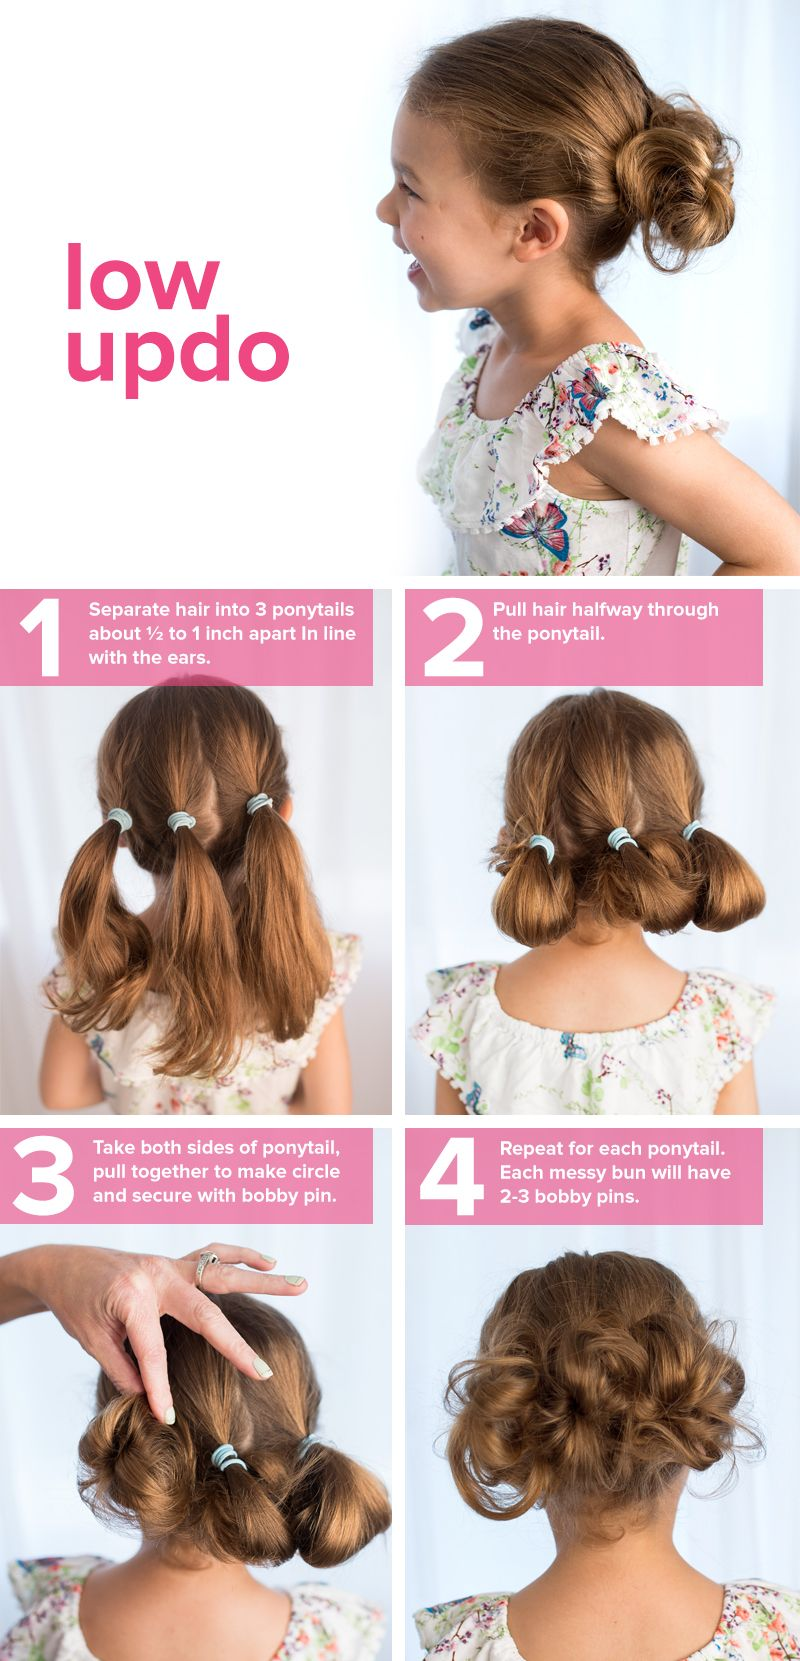 Cute Easy Hairstyles For Short Hair Endearing 5 Fast Easy Cute Hairstyles For Girls  Pinterest  Low Updo Updo